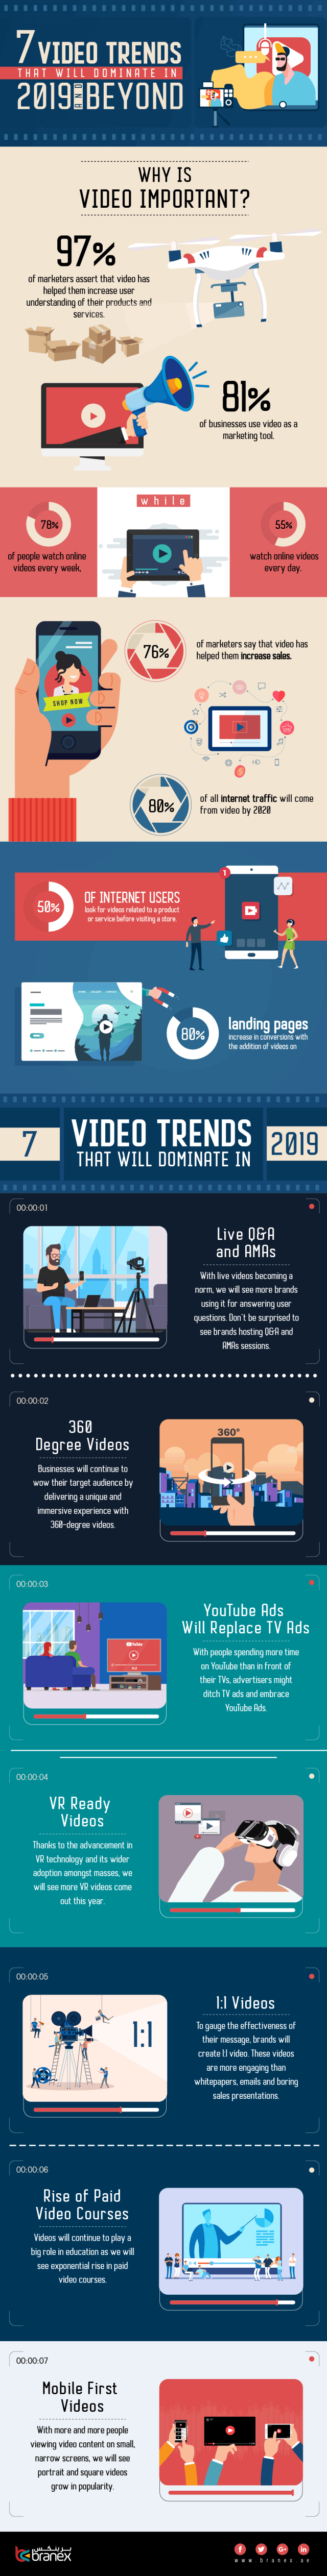 7_video_trends_info.png